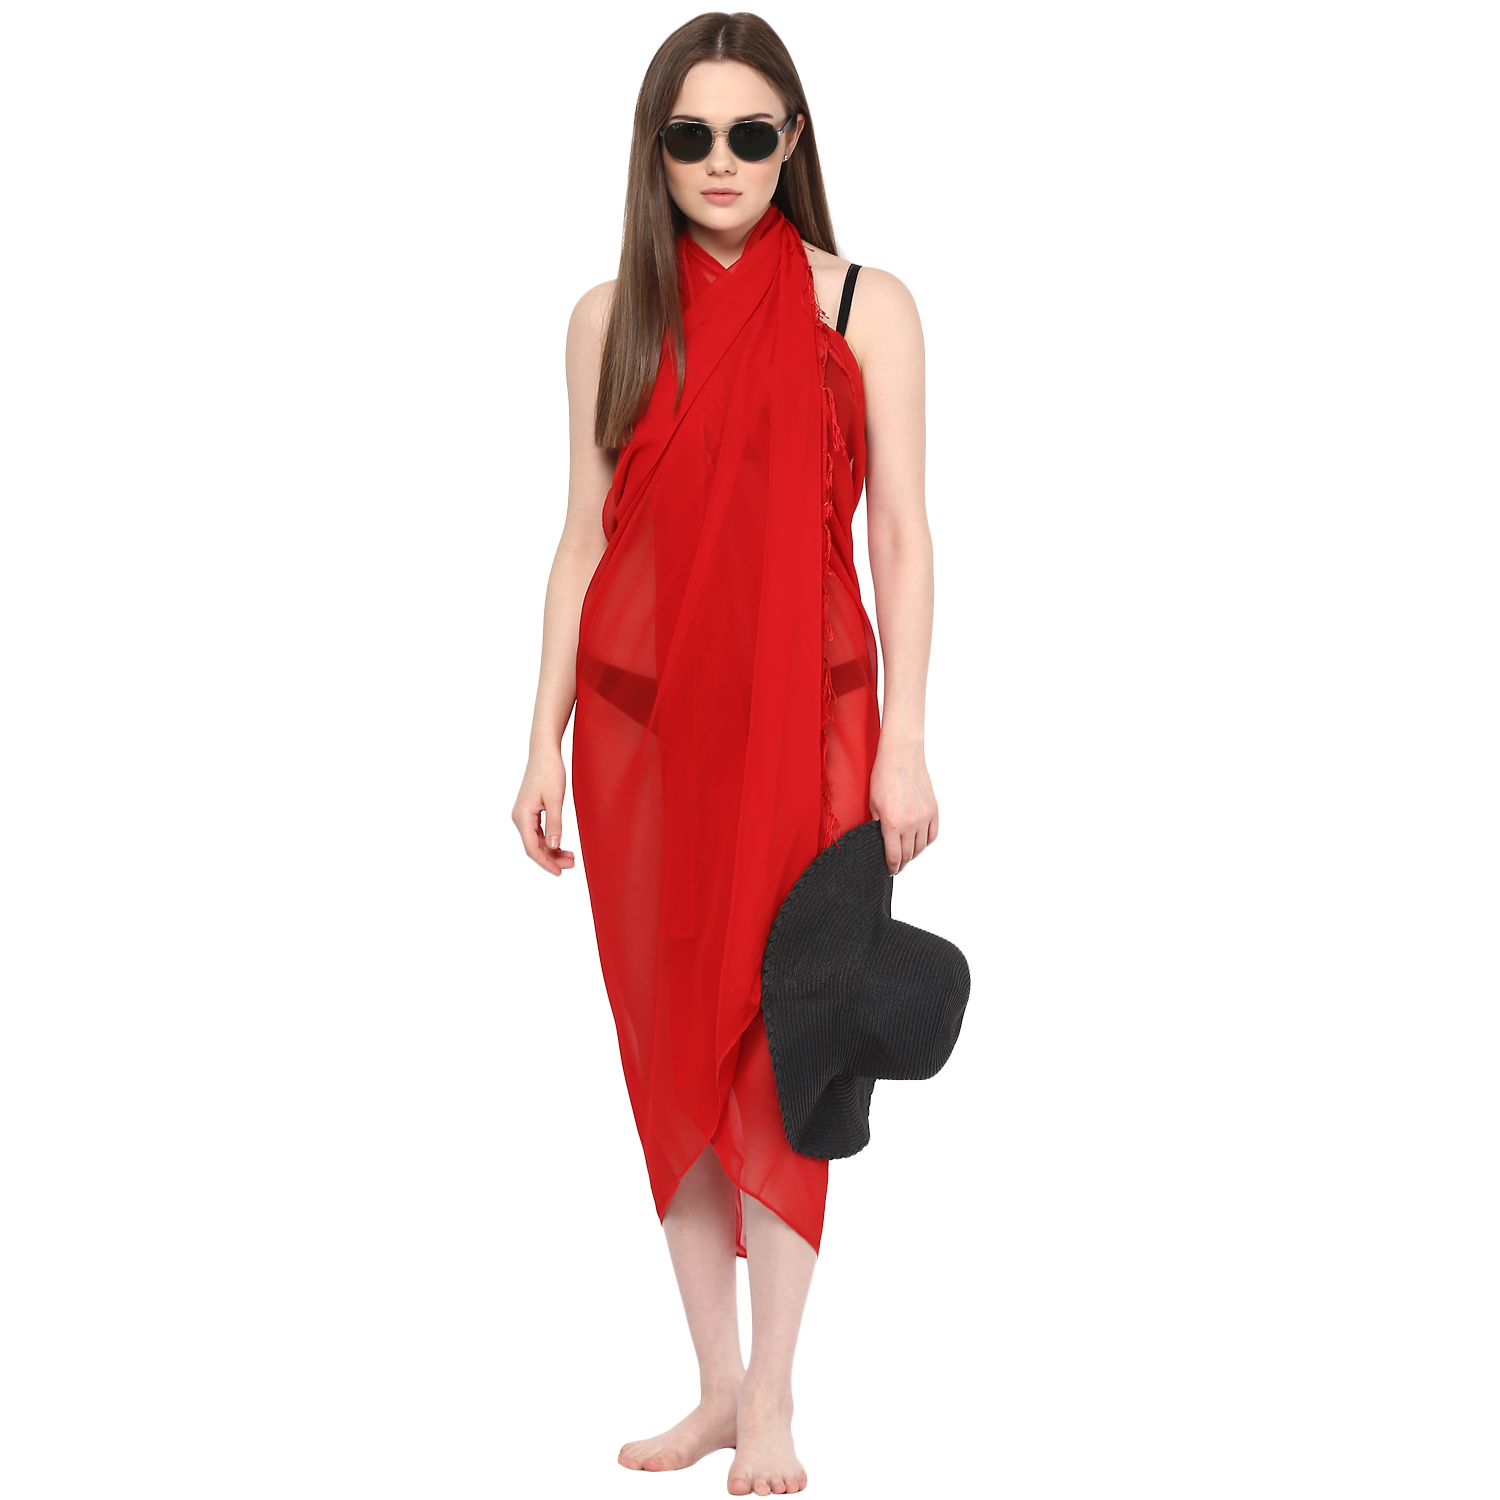 fe3850ae9c Sarong Women Solid Plain Beach Swimsuit Wrap Plus Size Sheer Cover ...